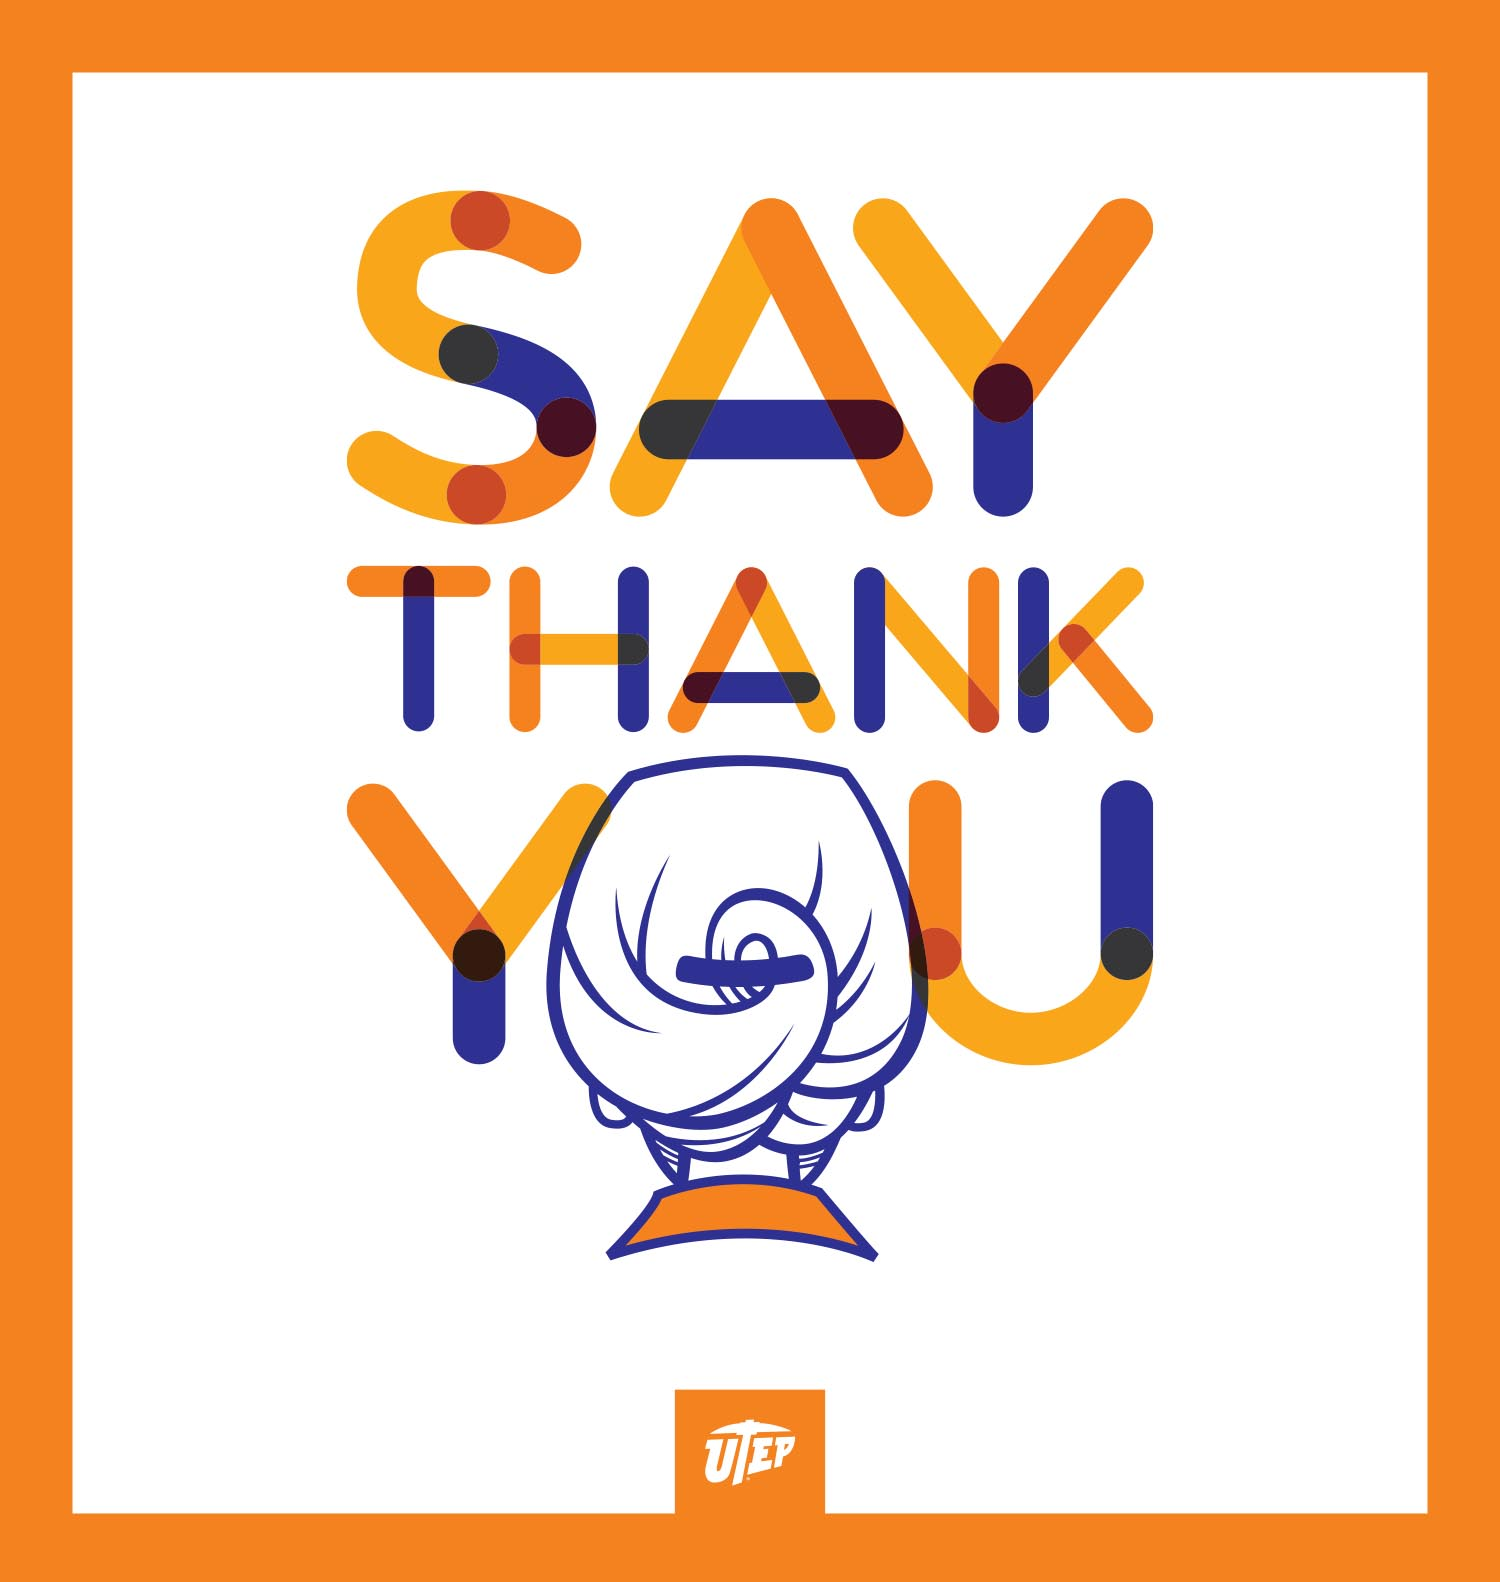 Say Thank You campaign logo